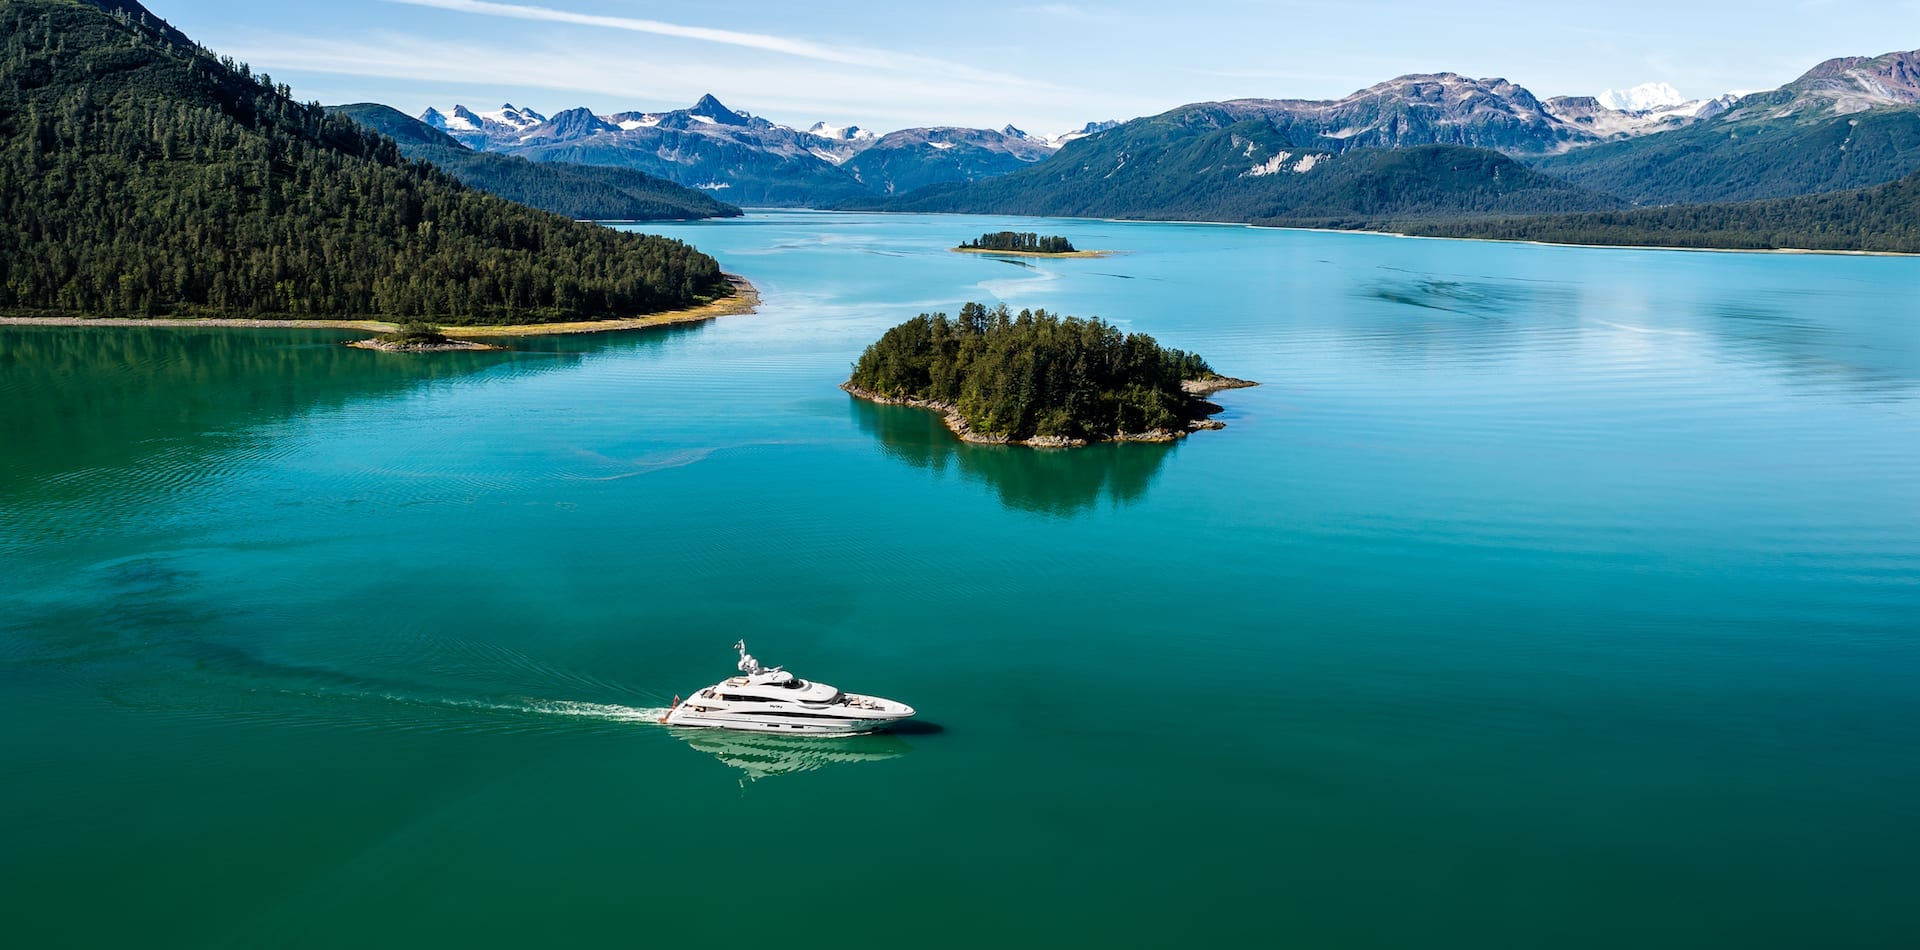 My Sky luxury Yacht, Alaska alpine waters